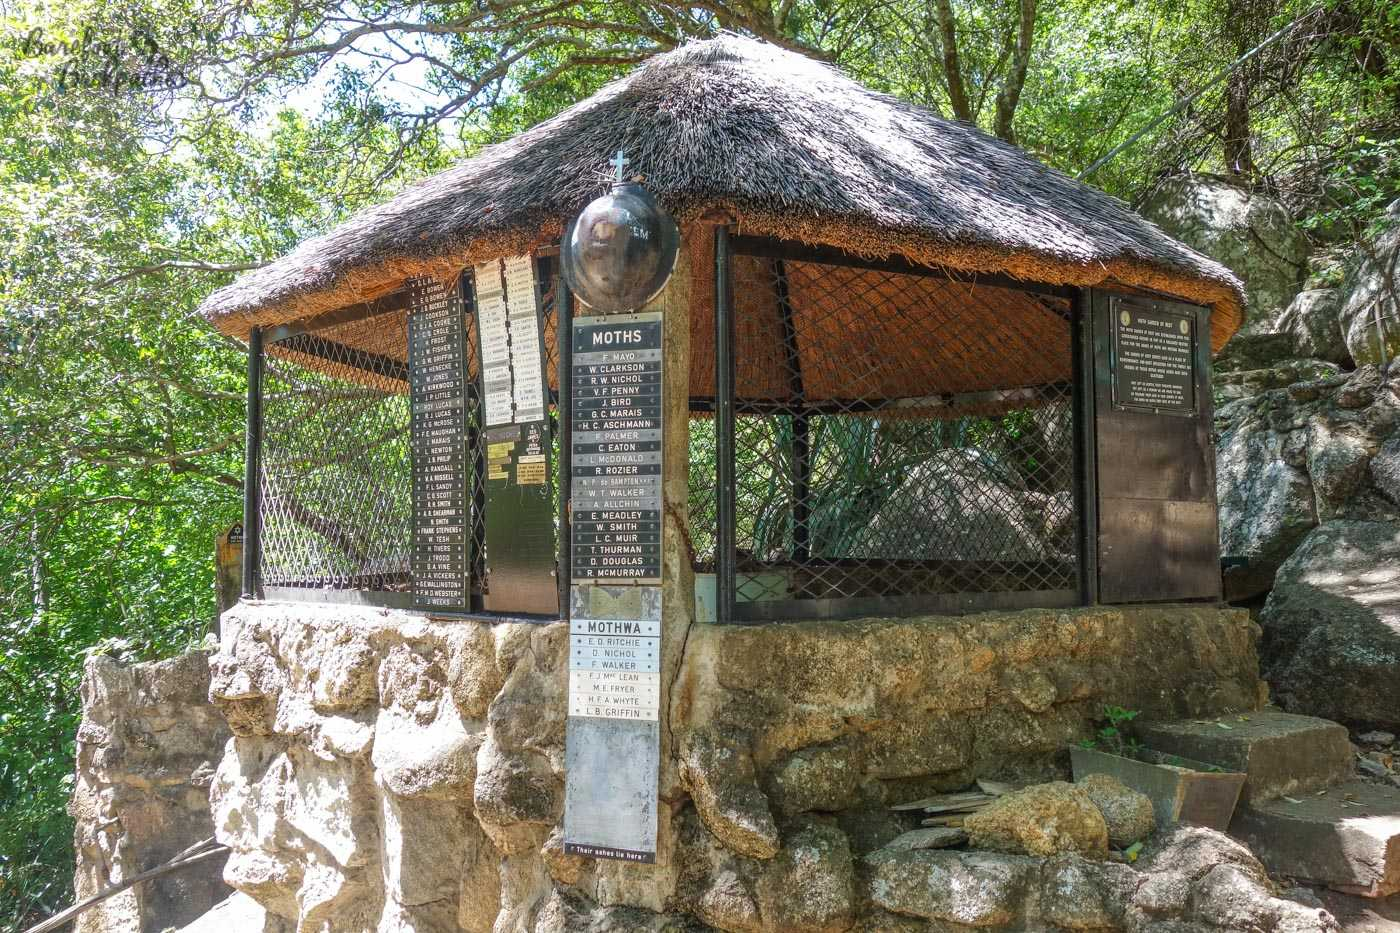 The MOTH shelter in the Matabo Hills, complete with dedication to the fallen.